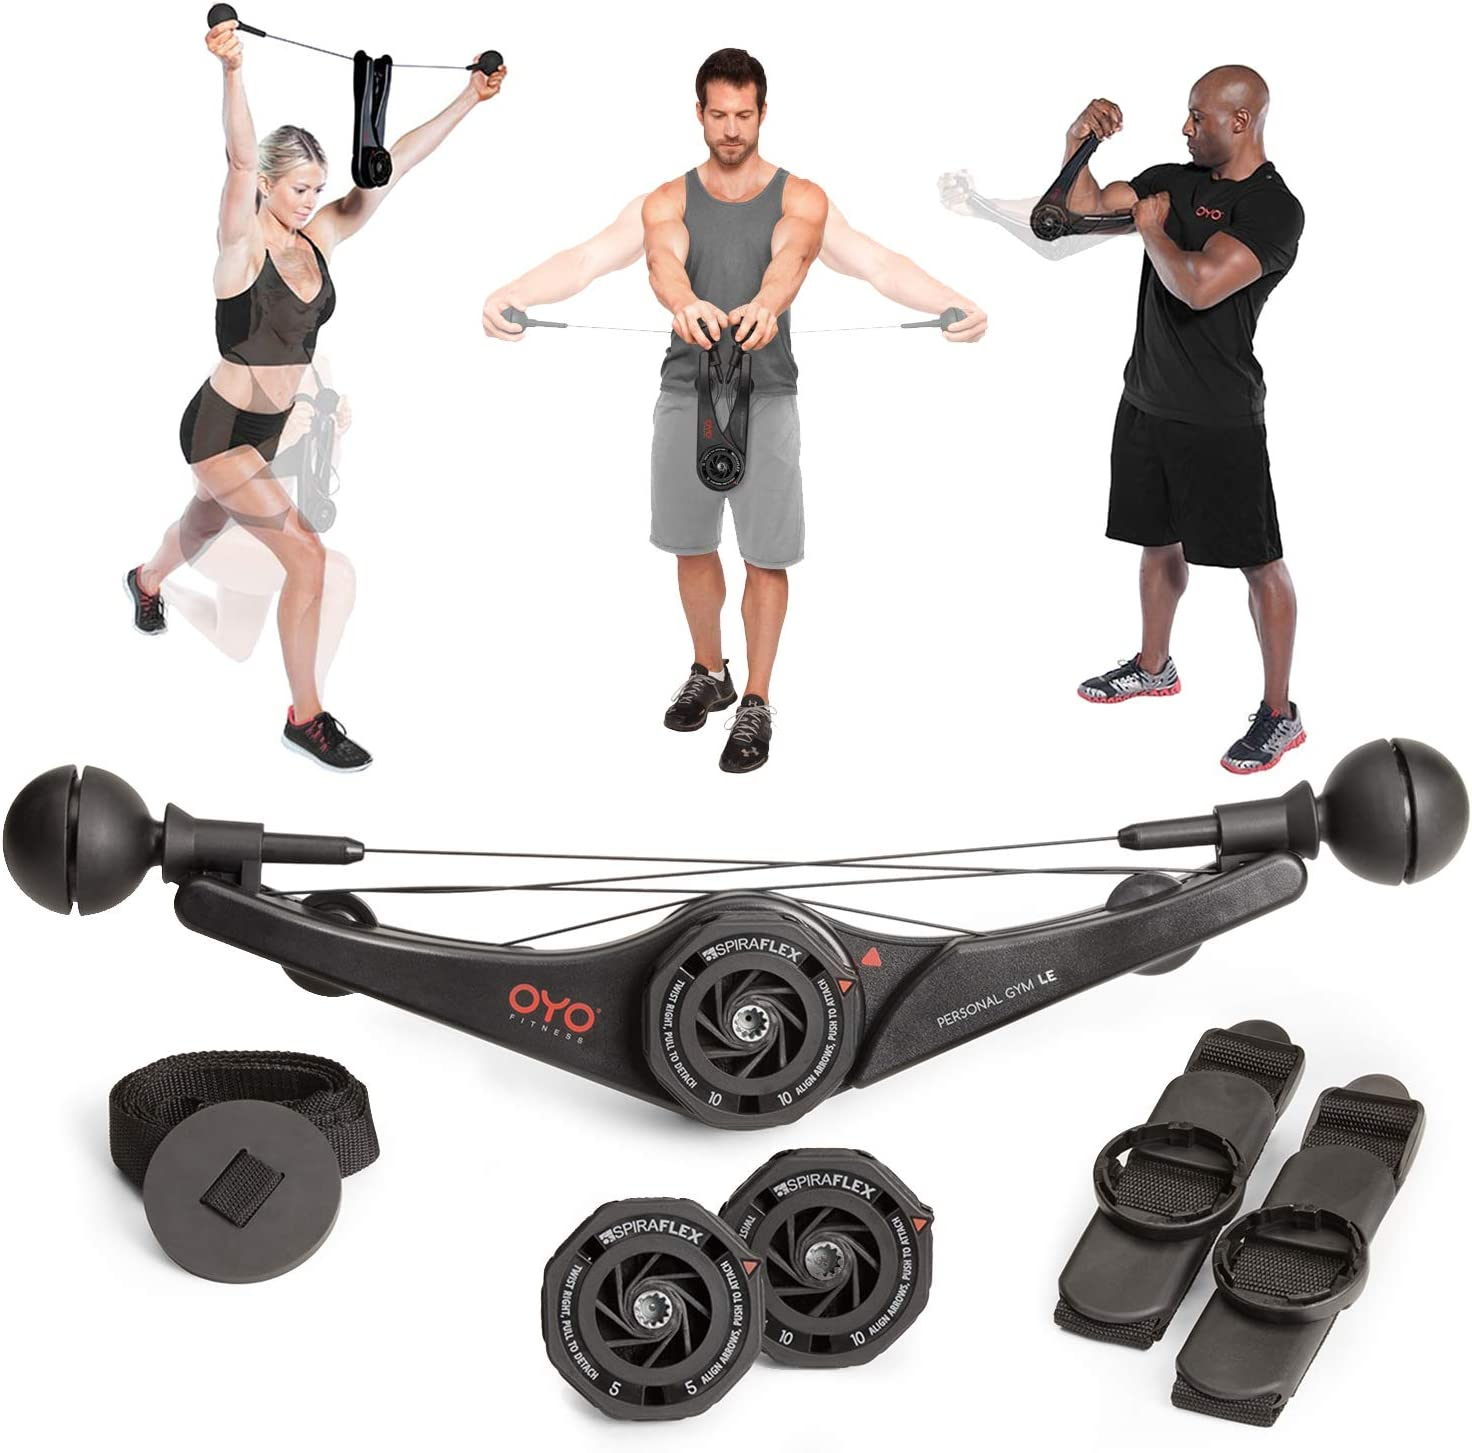 Amazon Com Oyo Personal Gym Full Body Portable Gym Equipment Set For Exercise At Home Office Or Travel Spiraflex Strength Training Fitness Technology Nasa Technology Sports Outdoors